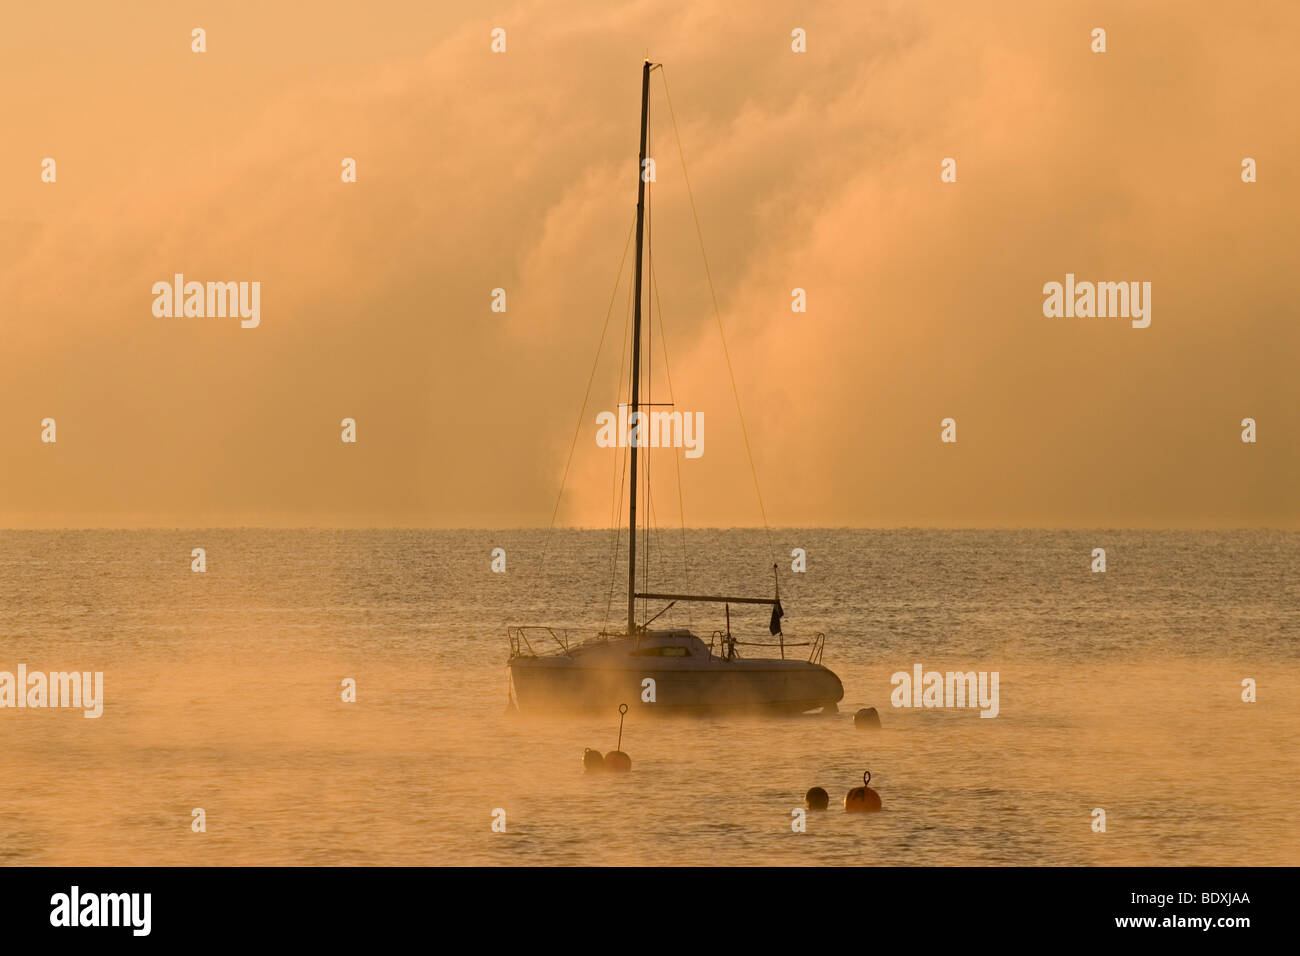 Sailing boat and low morning fog over Ammersee lake at Utting, Bavaria, Germany, Europe Stock Photo